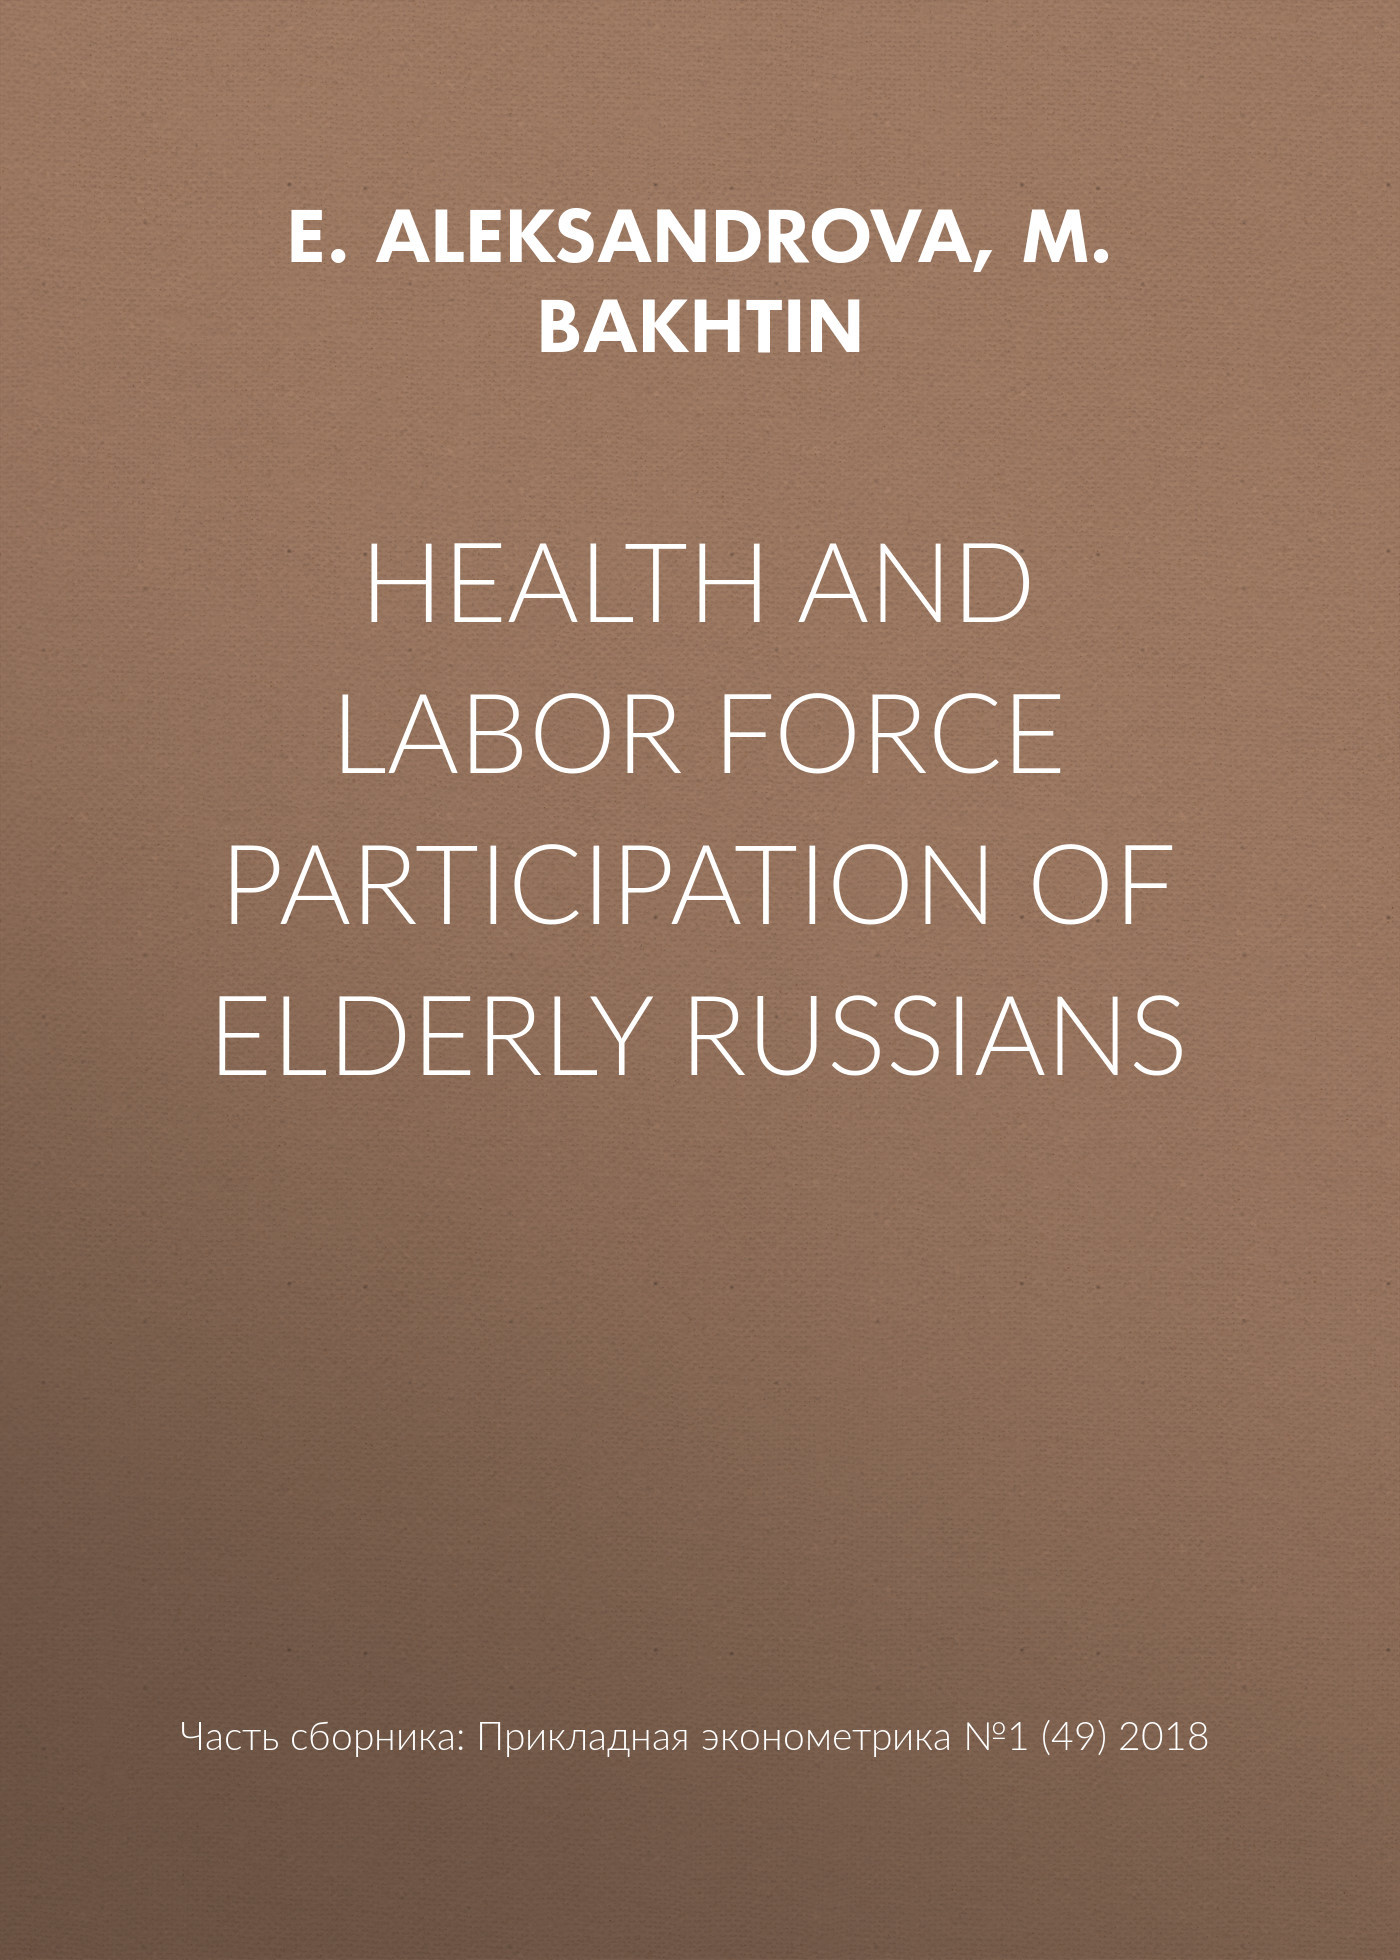 E. Aleksandrova Health and labor force participation of elderly Russians effect of rosemary extracts on the growth of skin infections